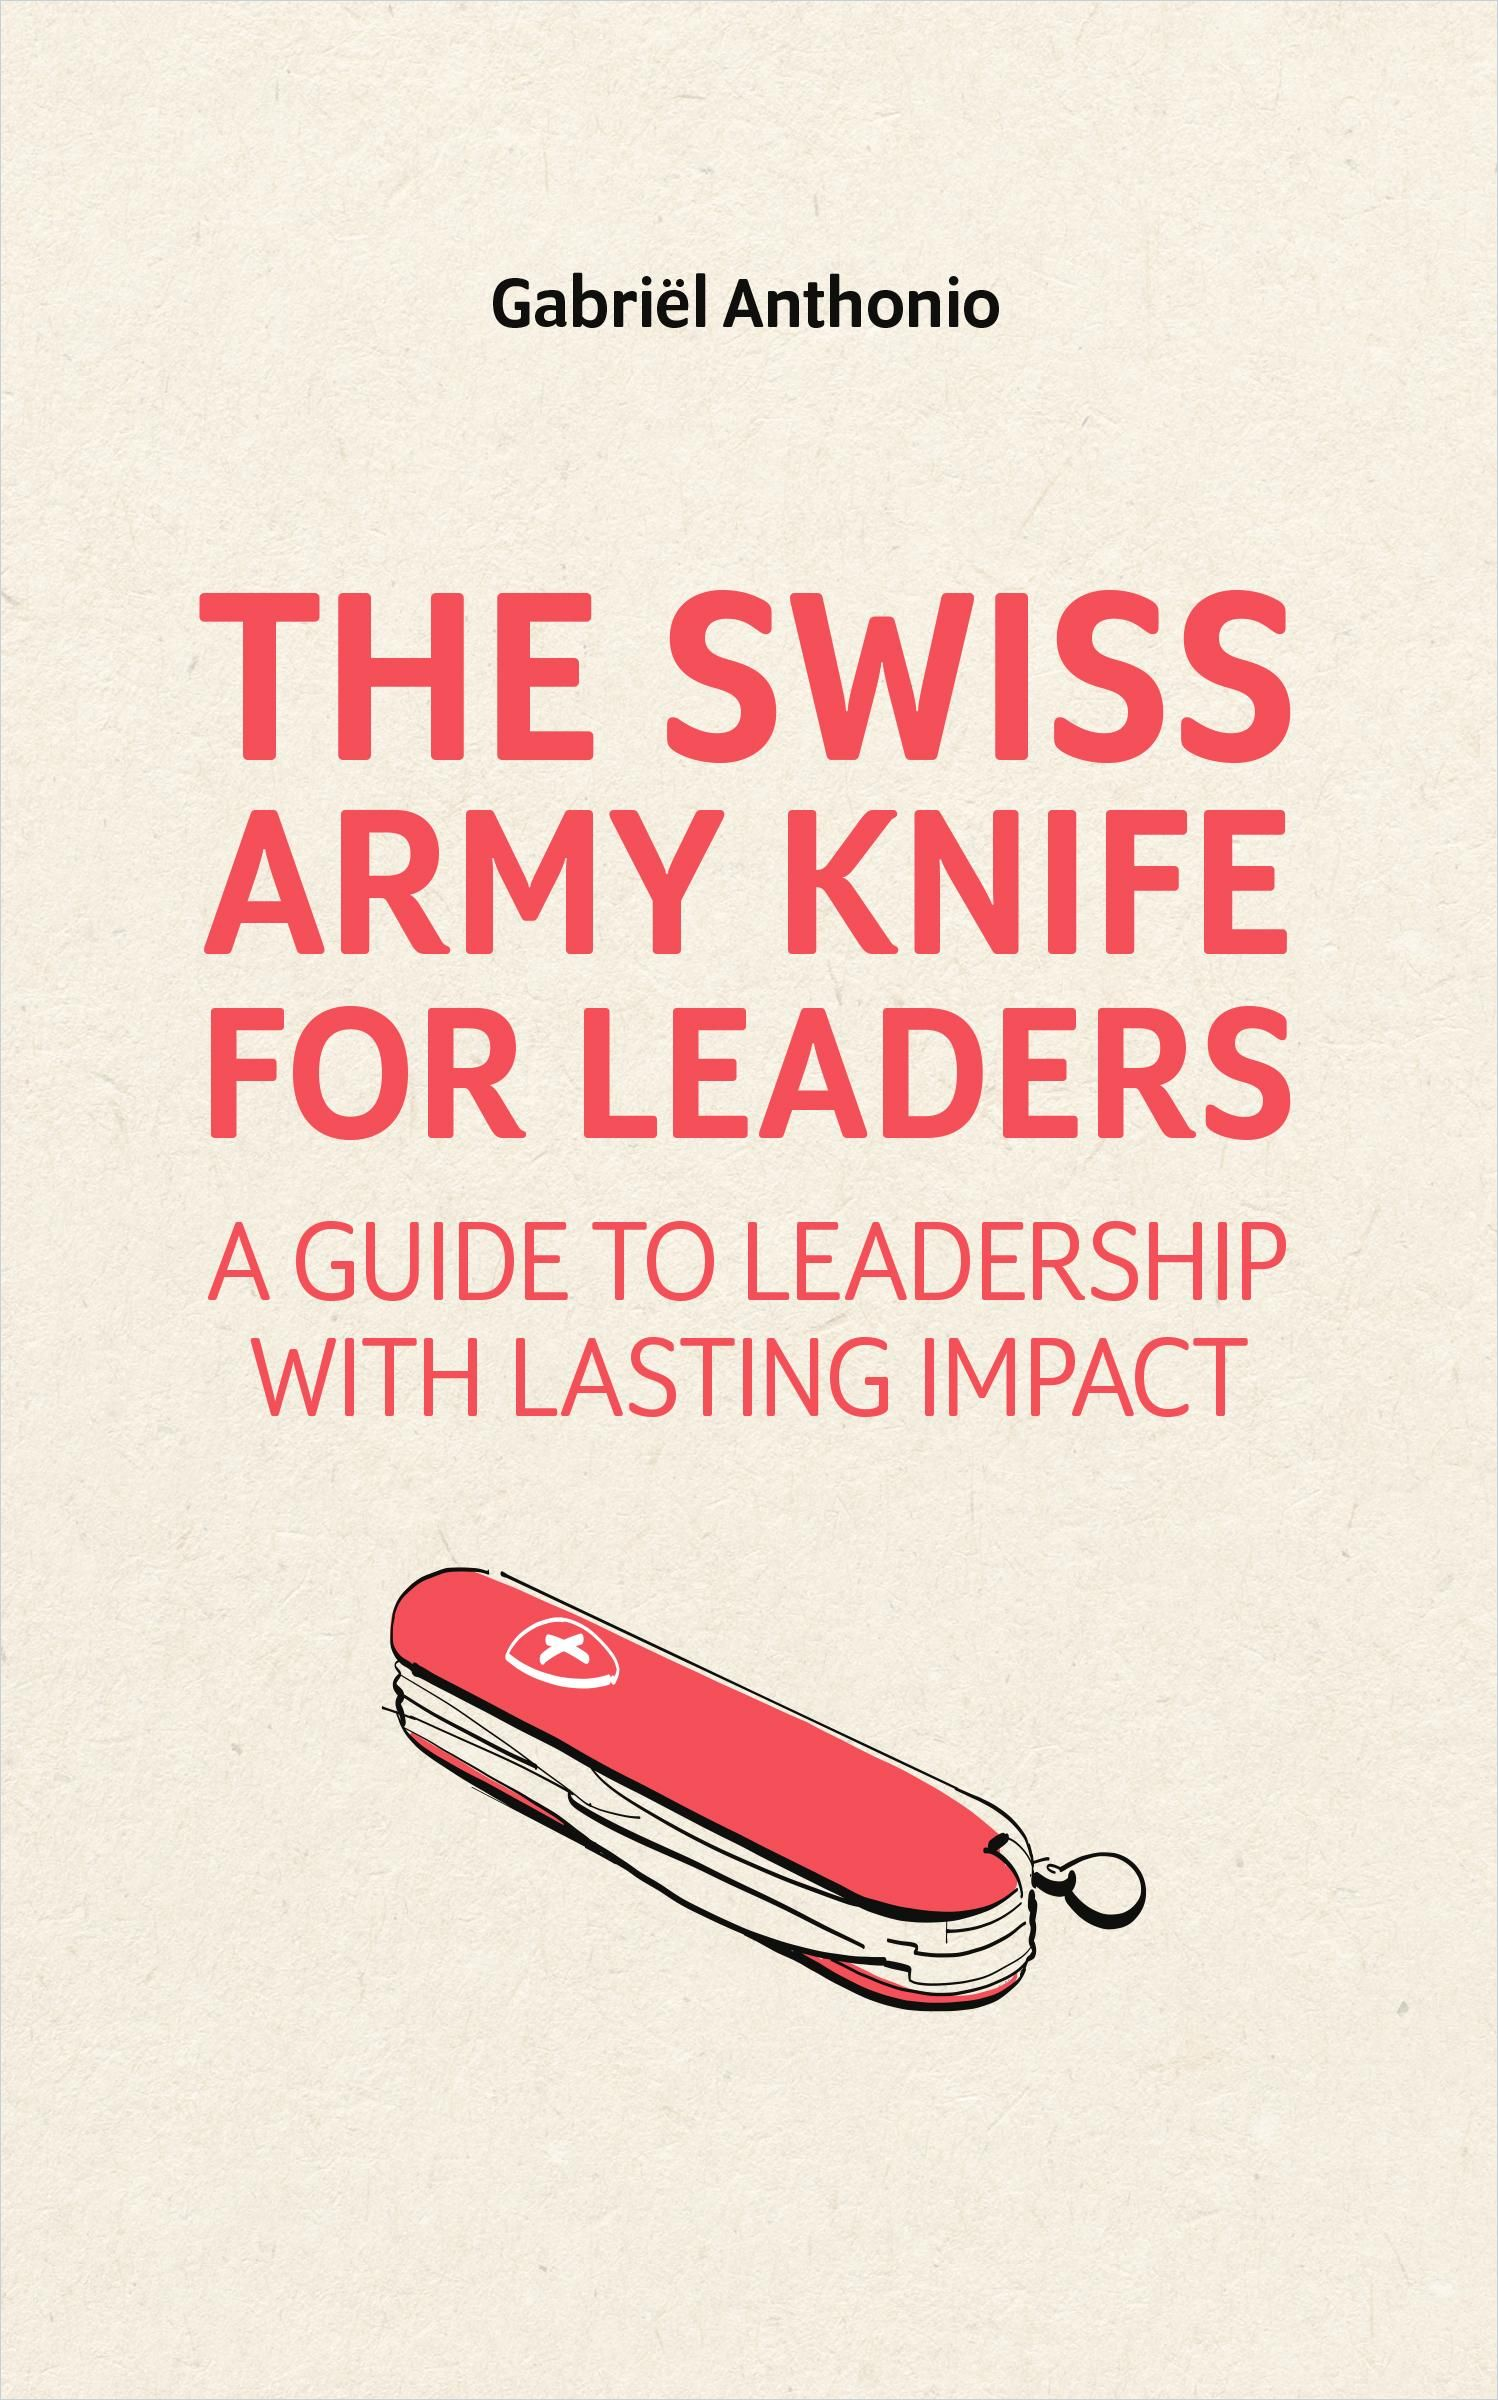 Image of: The Swiss Army Knife for Leaders